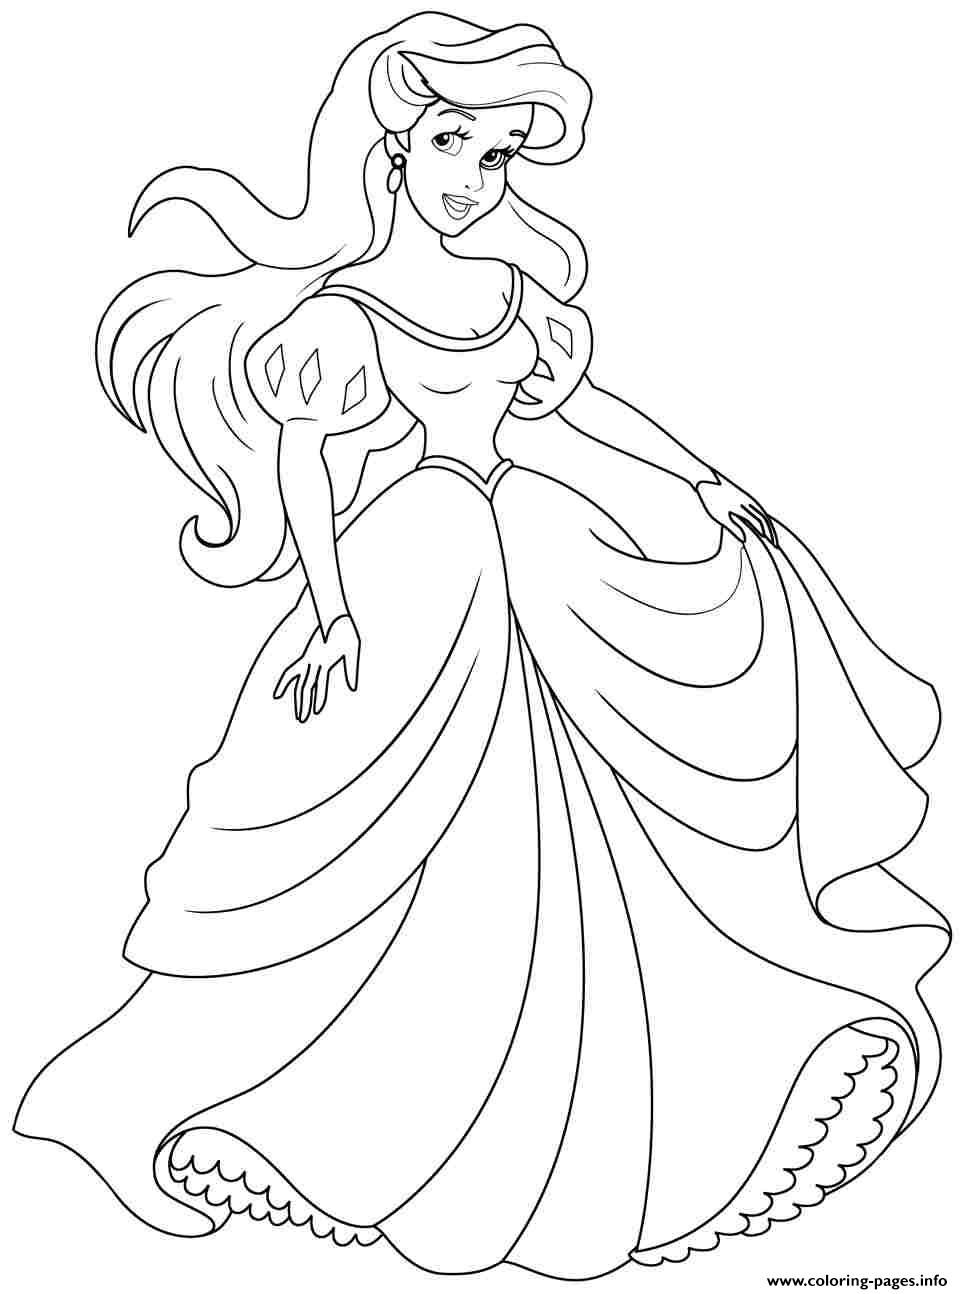 Print Princess Ariel Human Coloring Pages